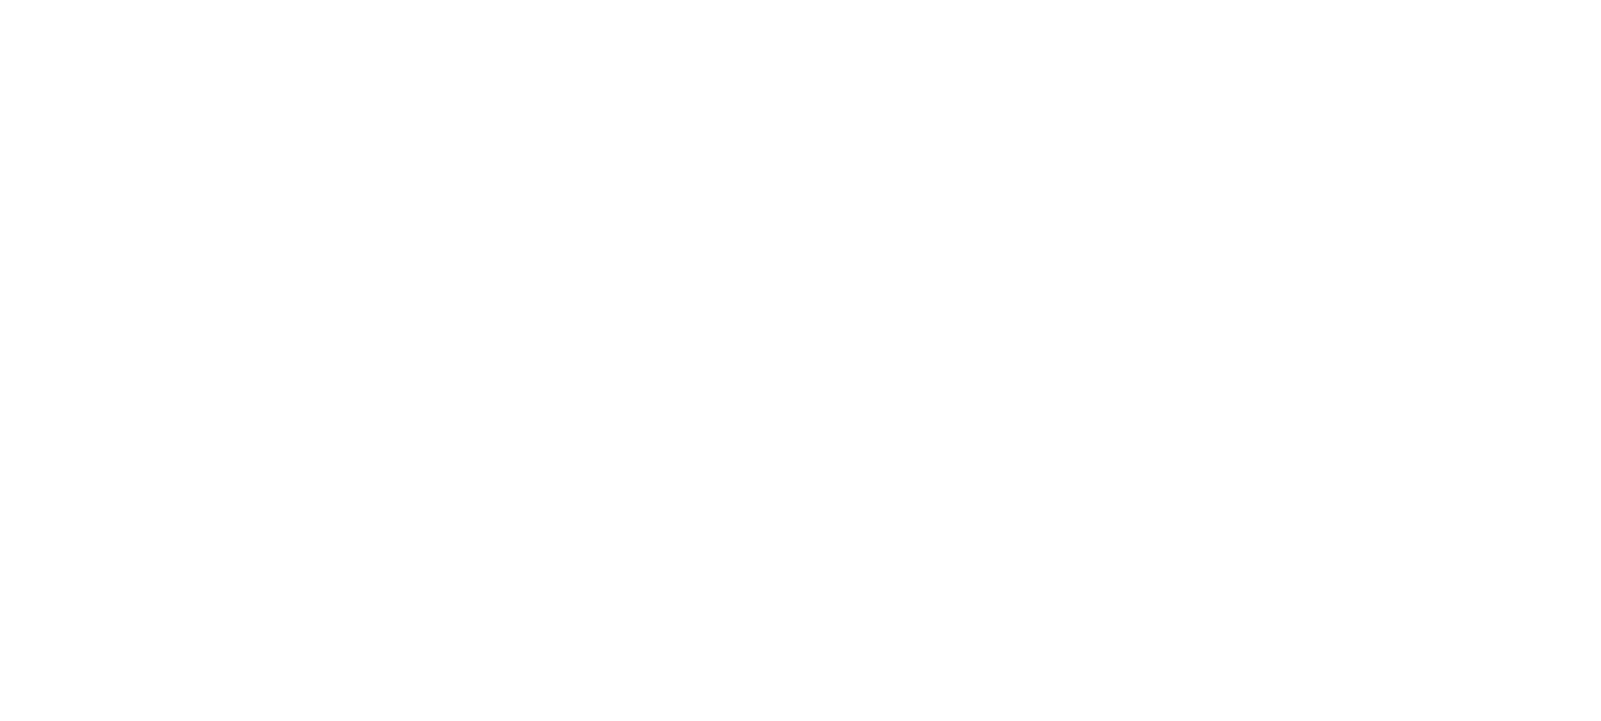 Deacon's New South logo